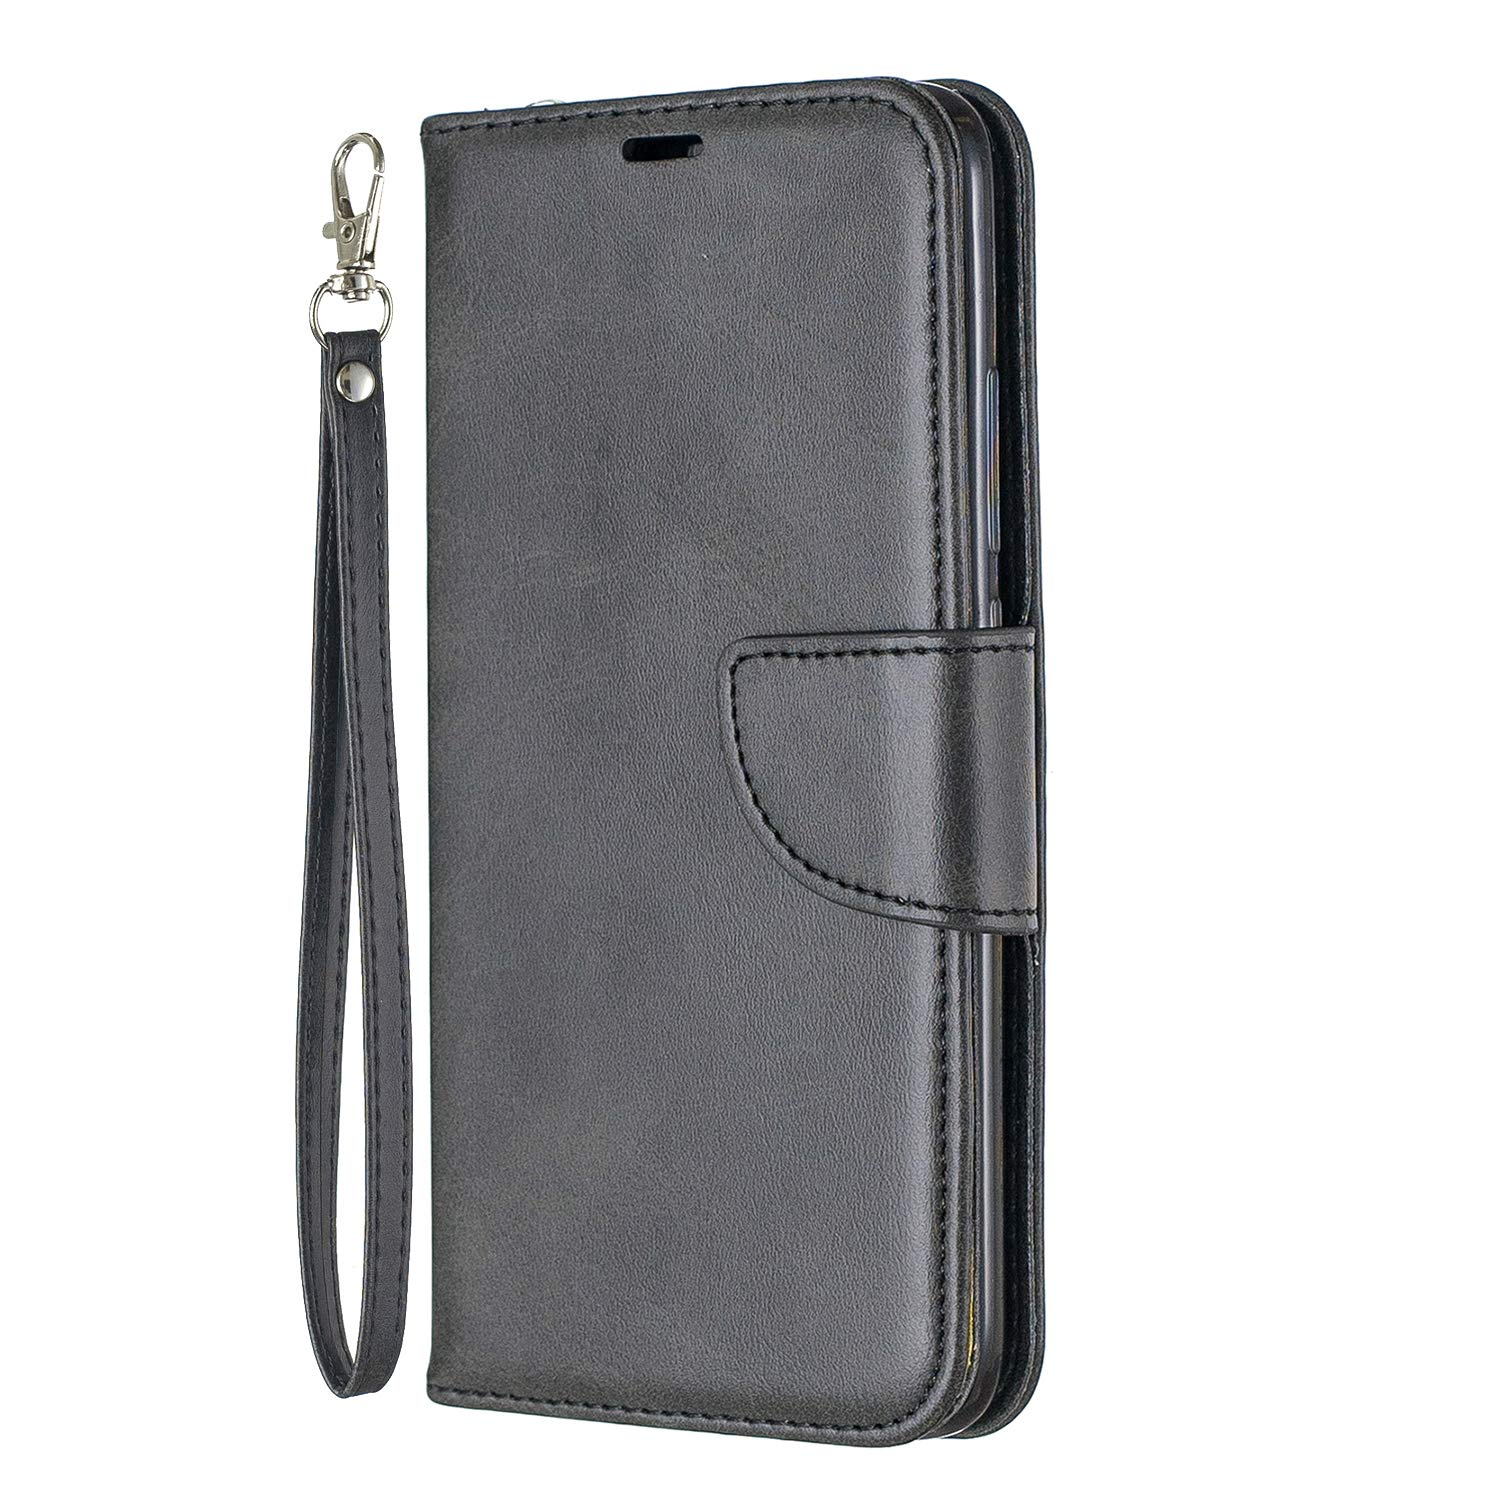 Lomogo Xiaomi Redmi 7 / Y3 Case Leather Wallet Case with Kickstand Card Holder Shockproof Flip Case Cover for Xiaomi Redmi7 / Redmi Y3 - LOBFE150643 Black